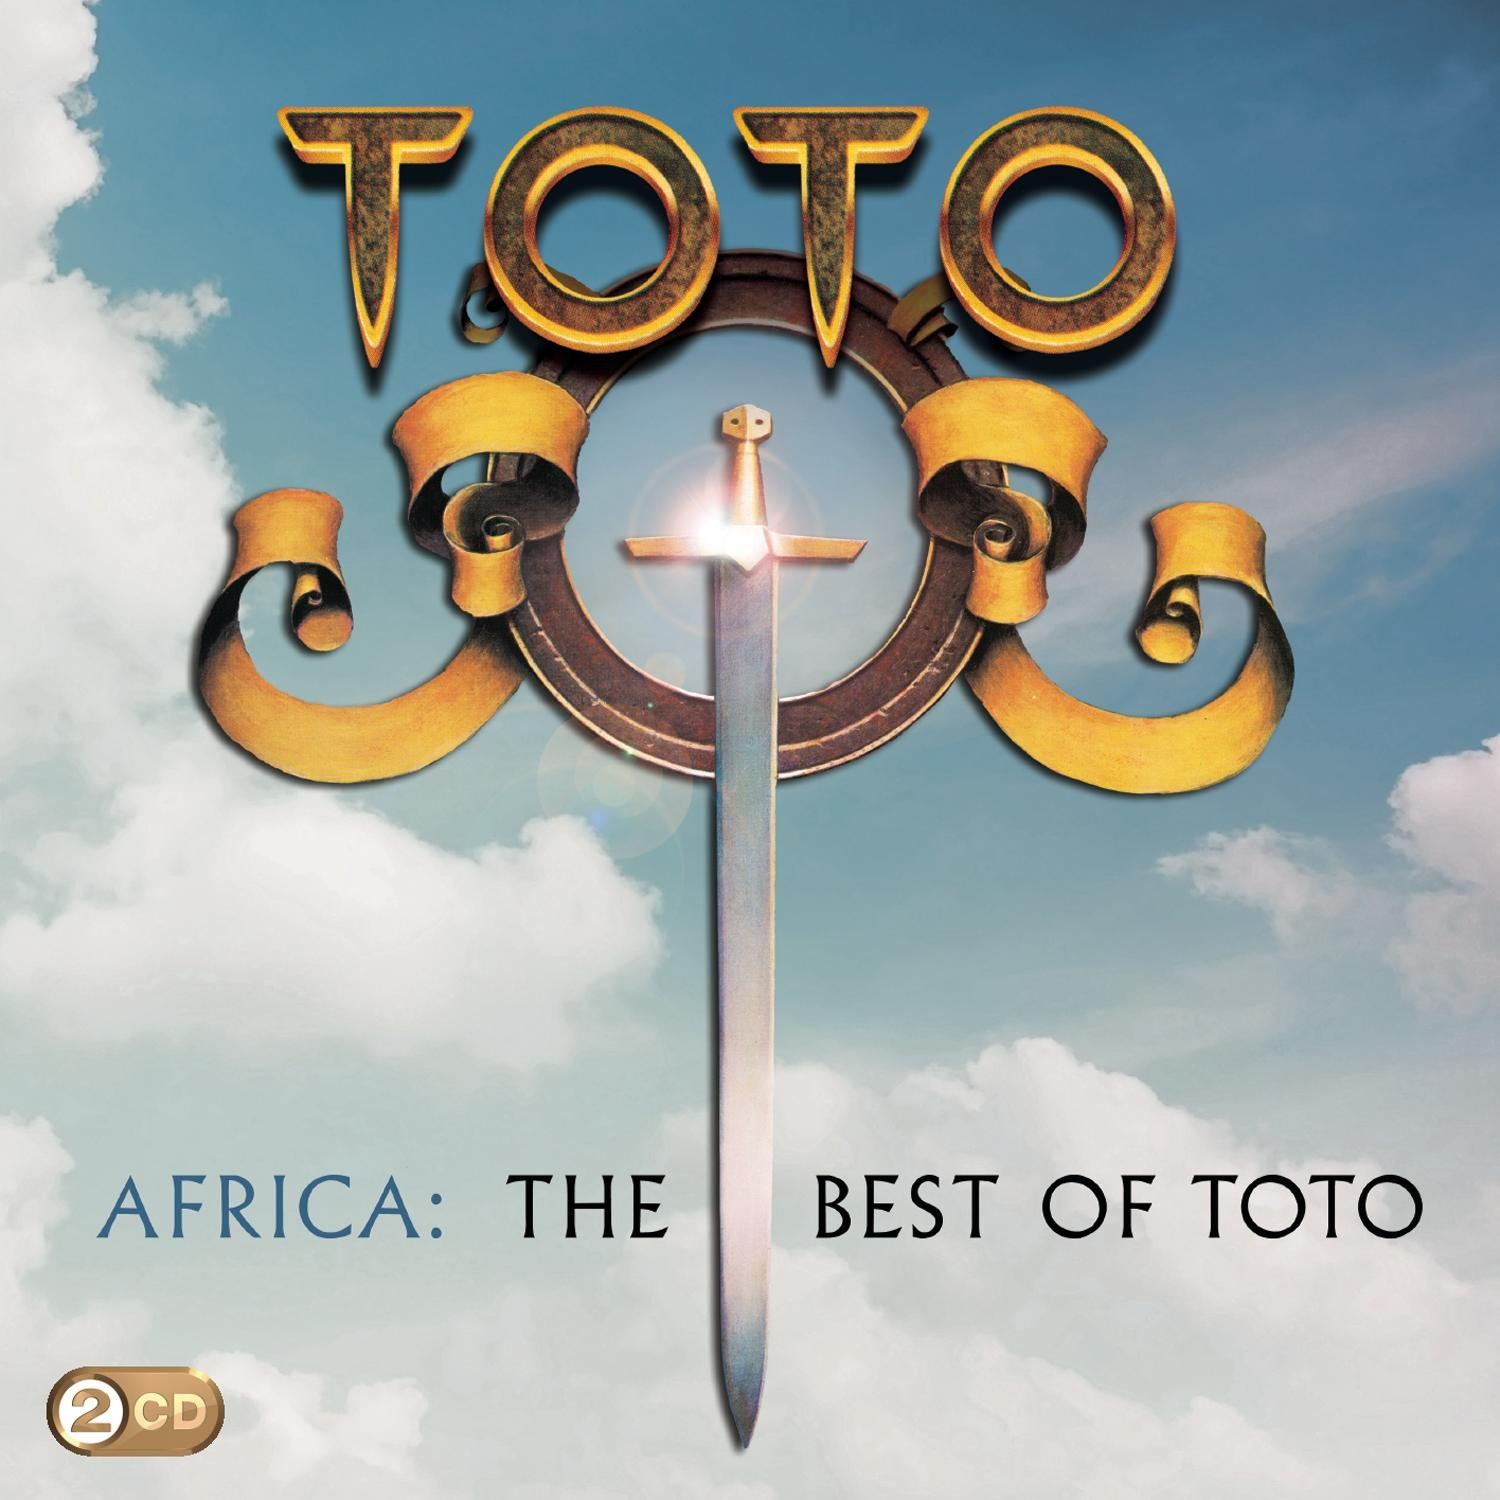 TOTO - Africa: The Best of Toto - Amazon.com Music